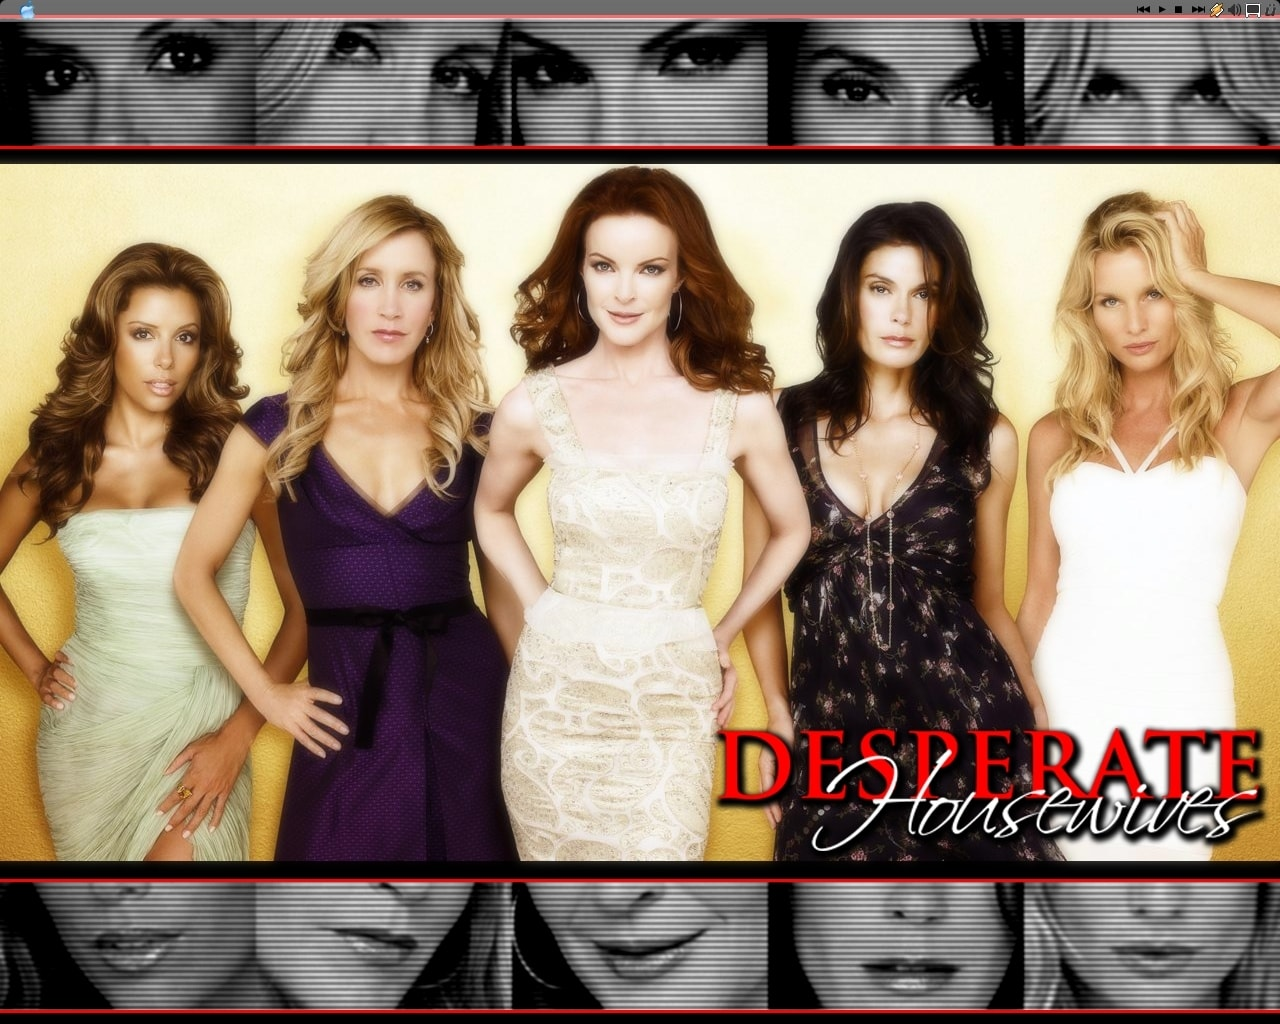 Desperate Housewives widescreen for desktop